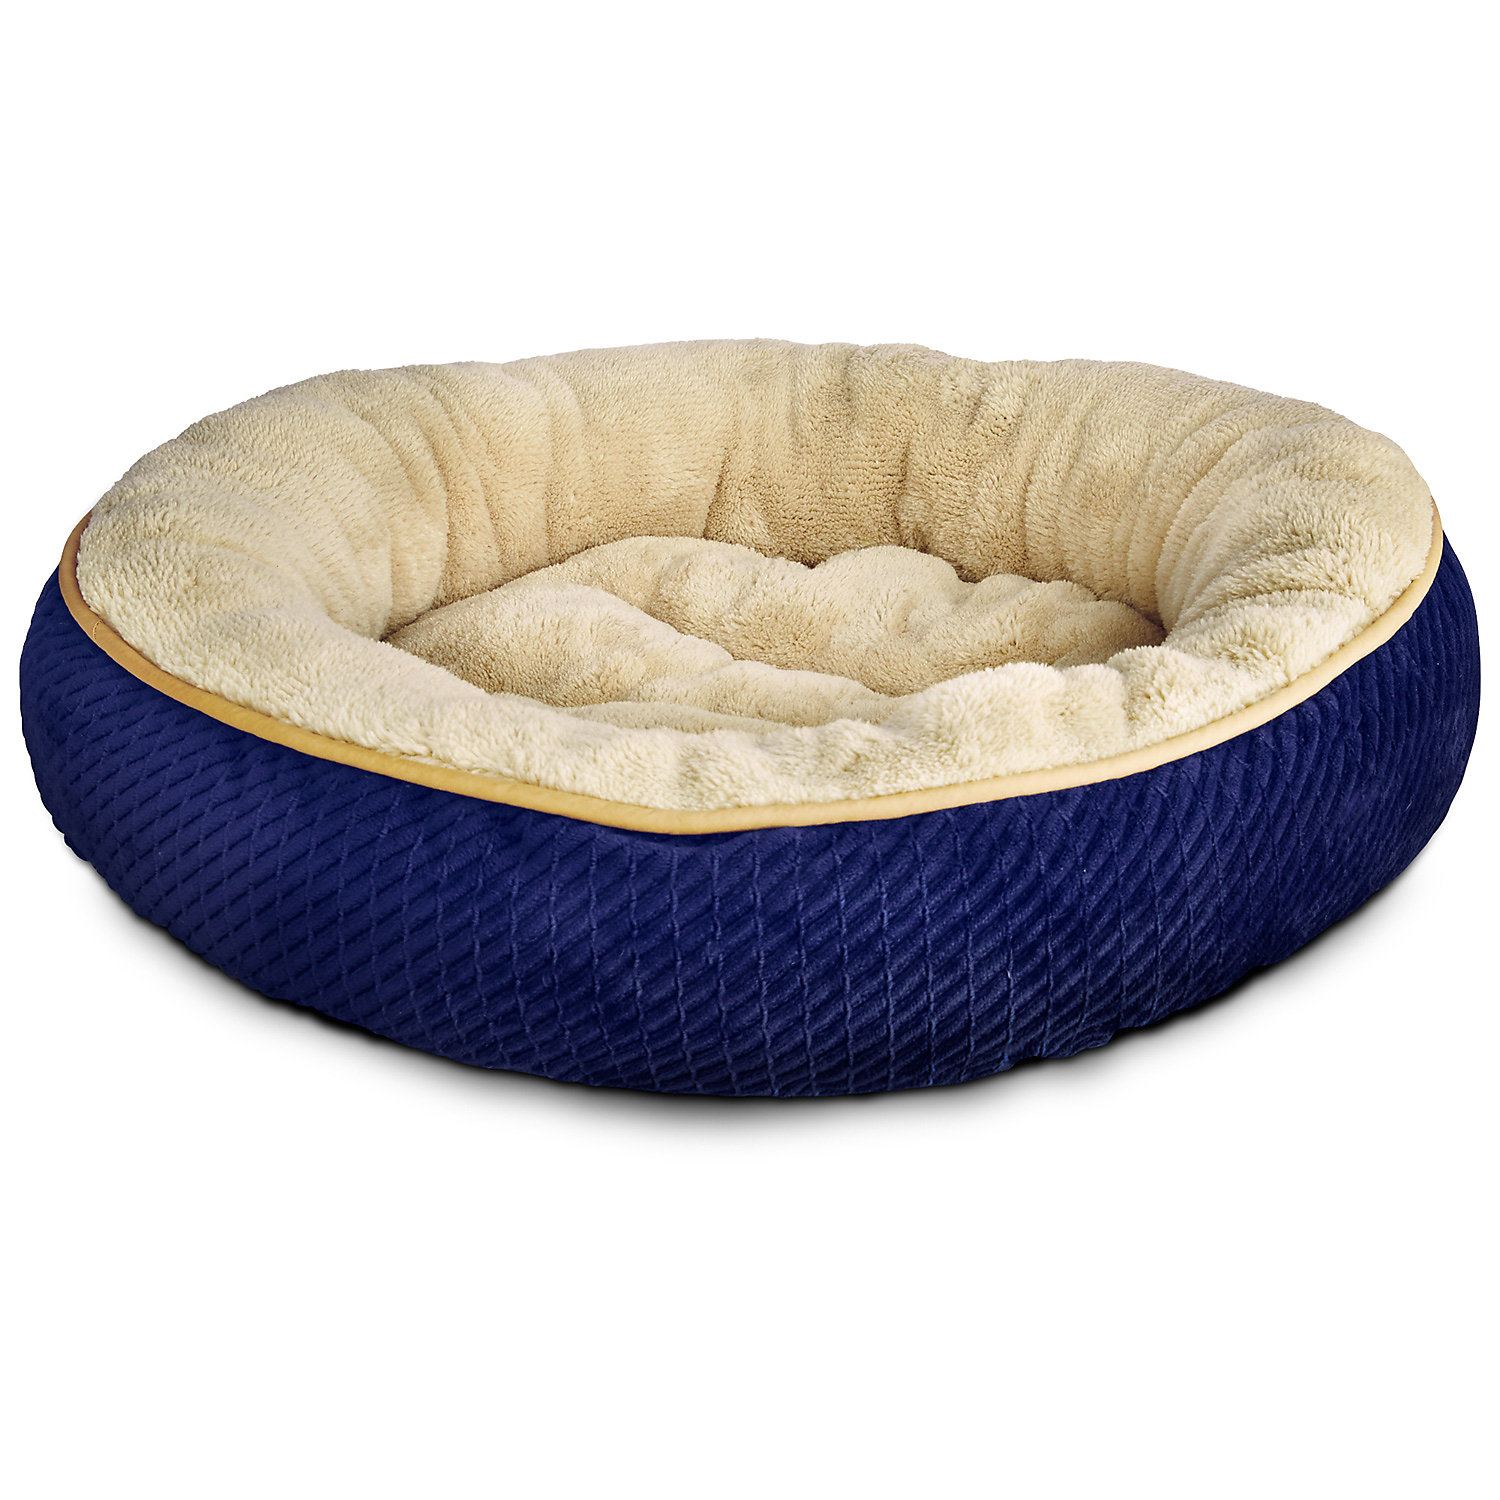 more details petco textured round cat bed in blue 20 diameter